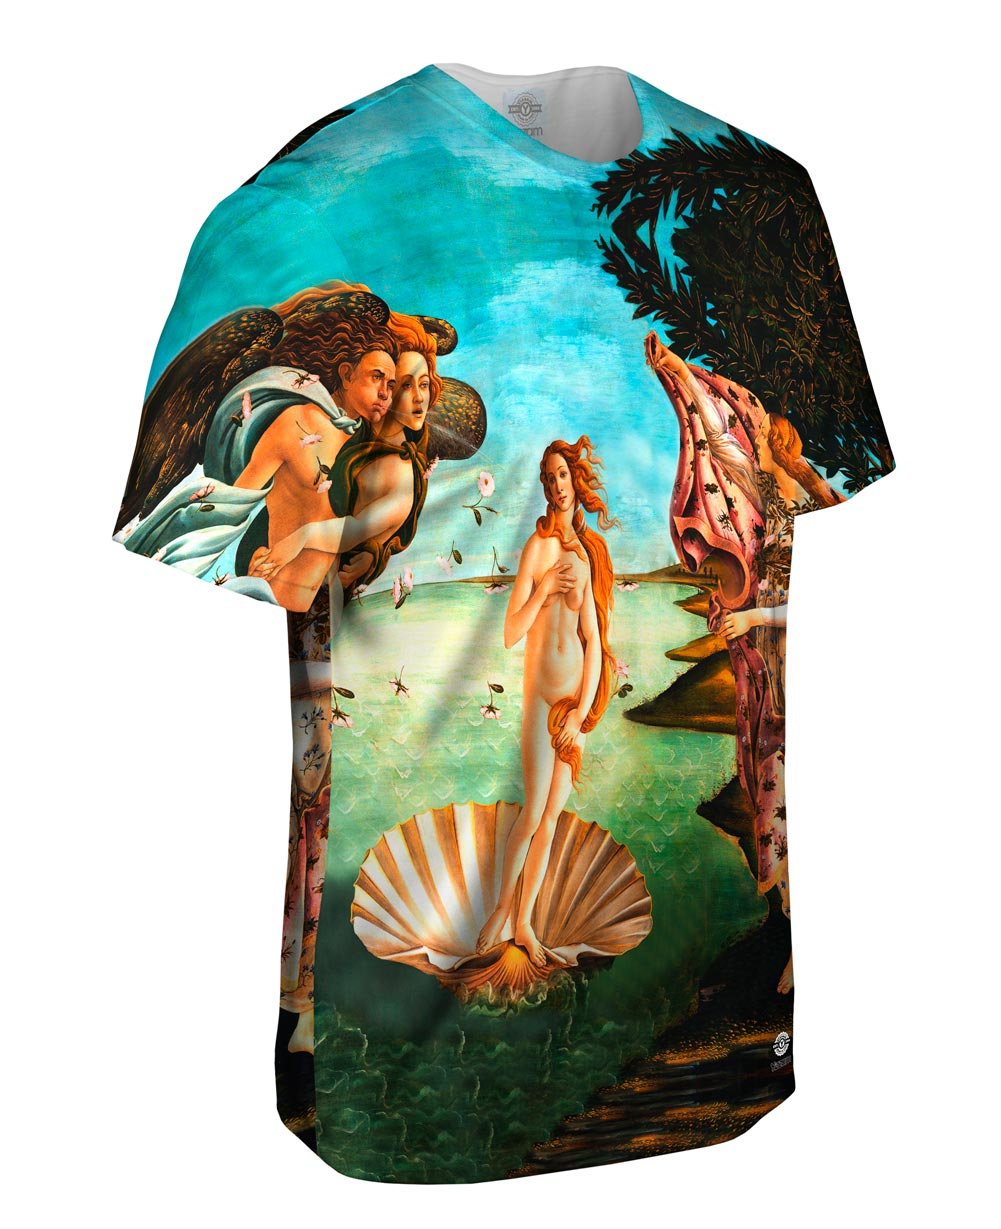 Shop for customizable Botticelli clothing on Zazzle. Check out our t-shirts, polo shirts, hoodies, & more great items. Start browsing today!